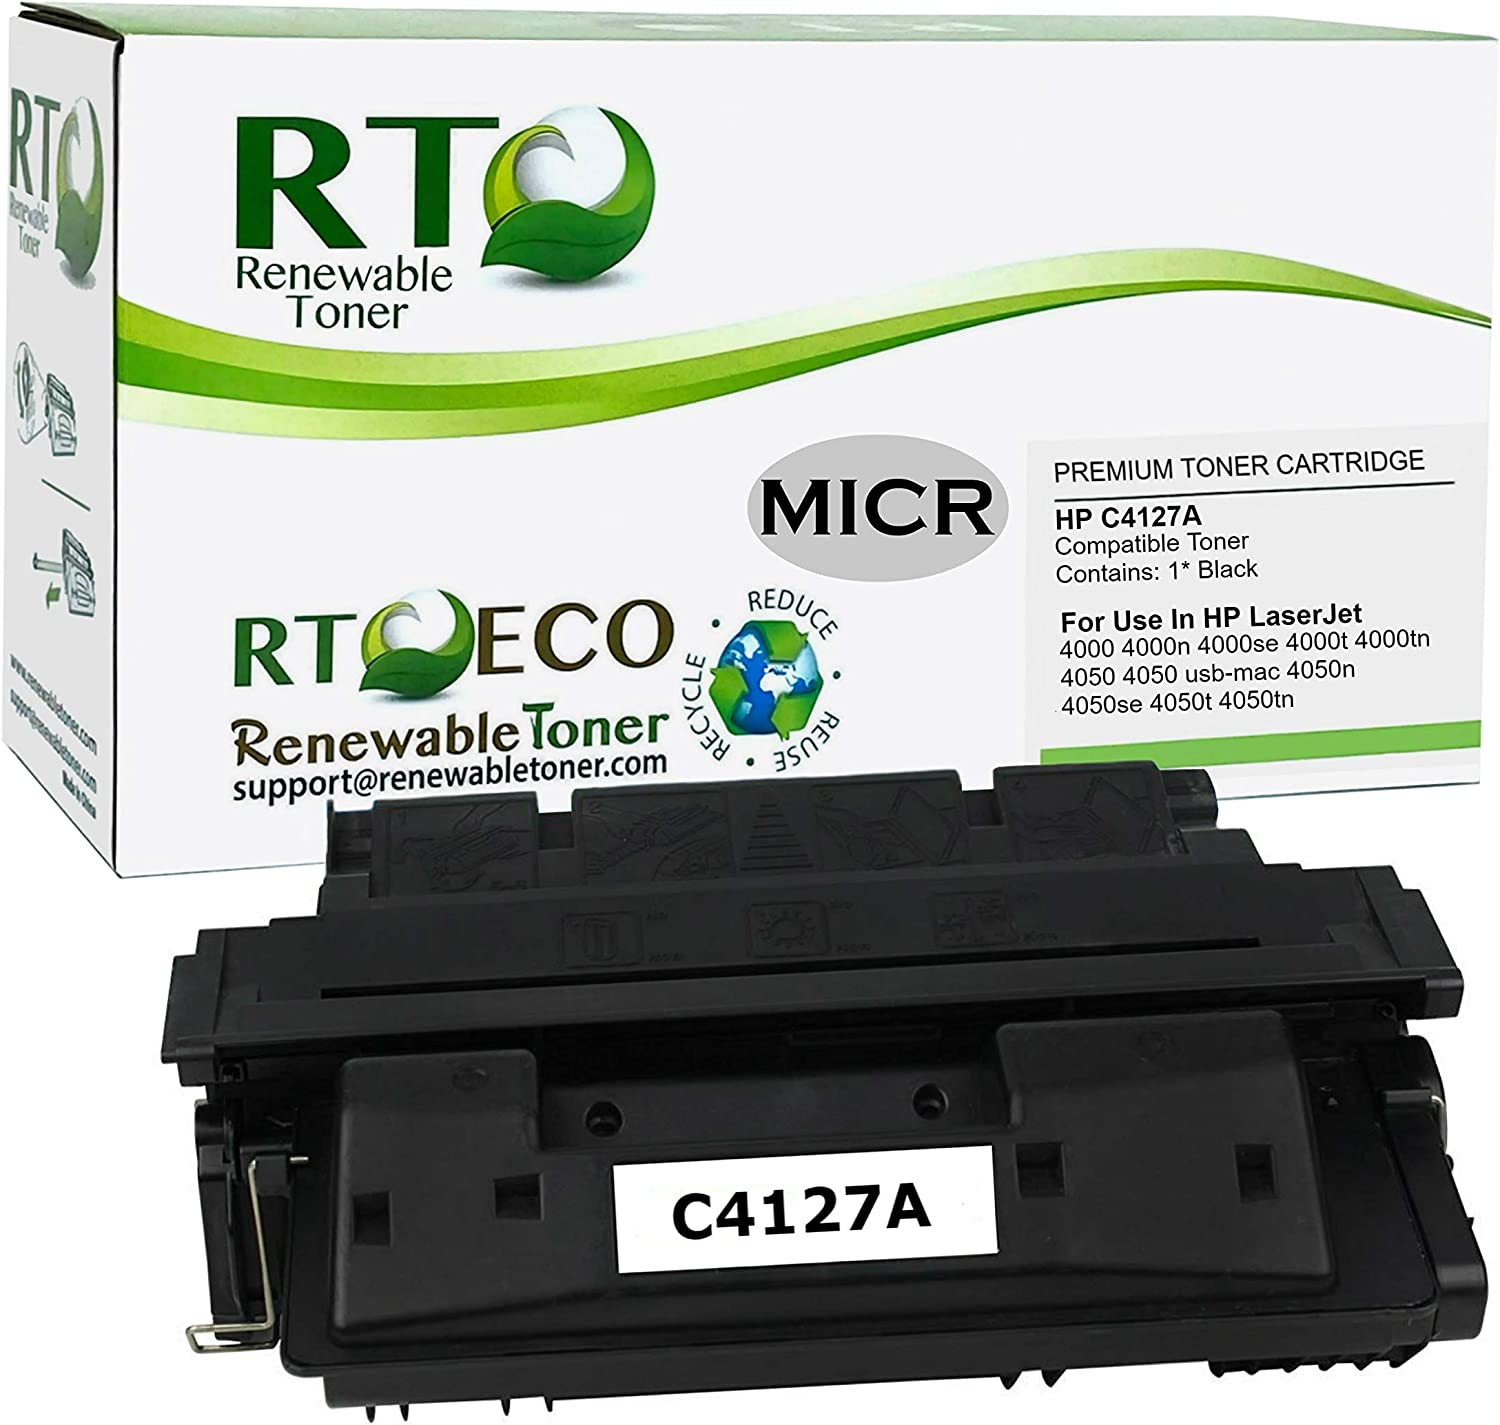 Renewable Toner Compatible MICR Toner Cartridge Replacement for HP C4127A 27A Laserjet 4000 4050